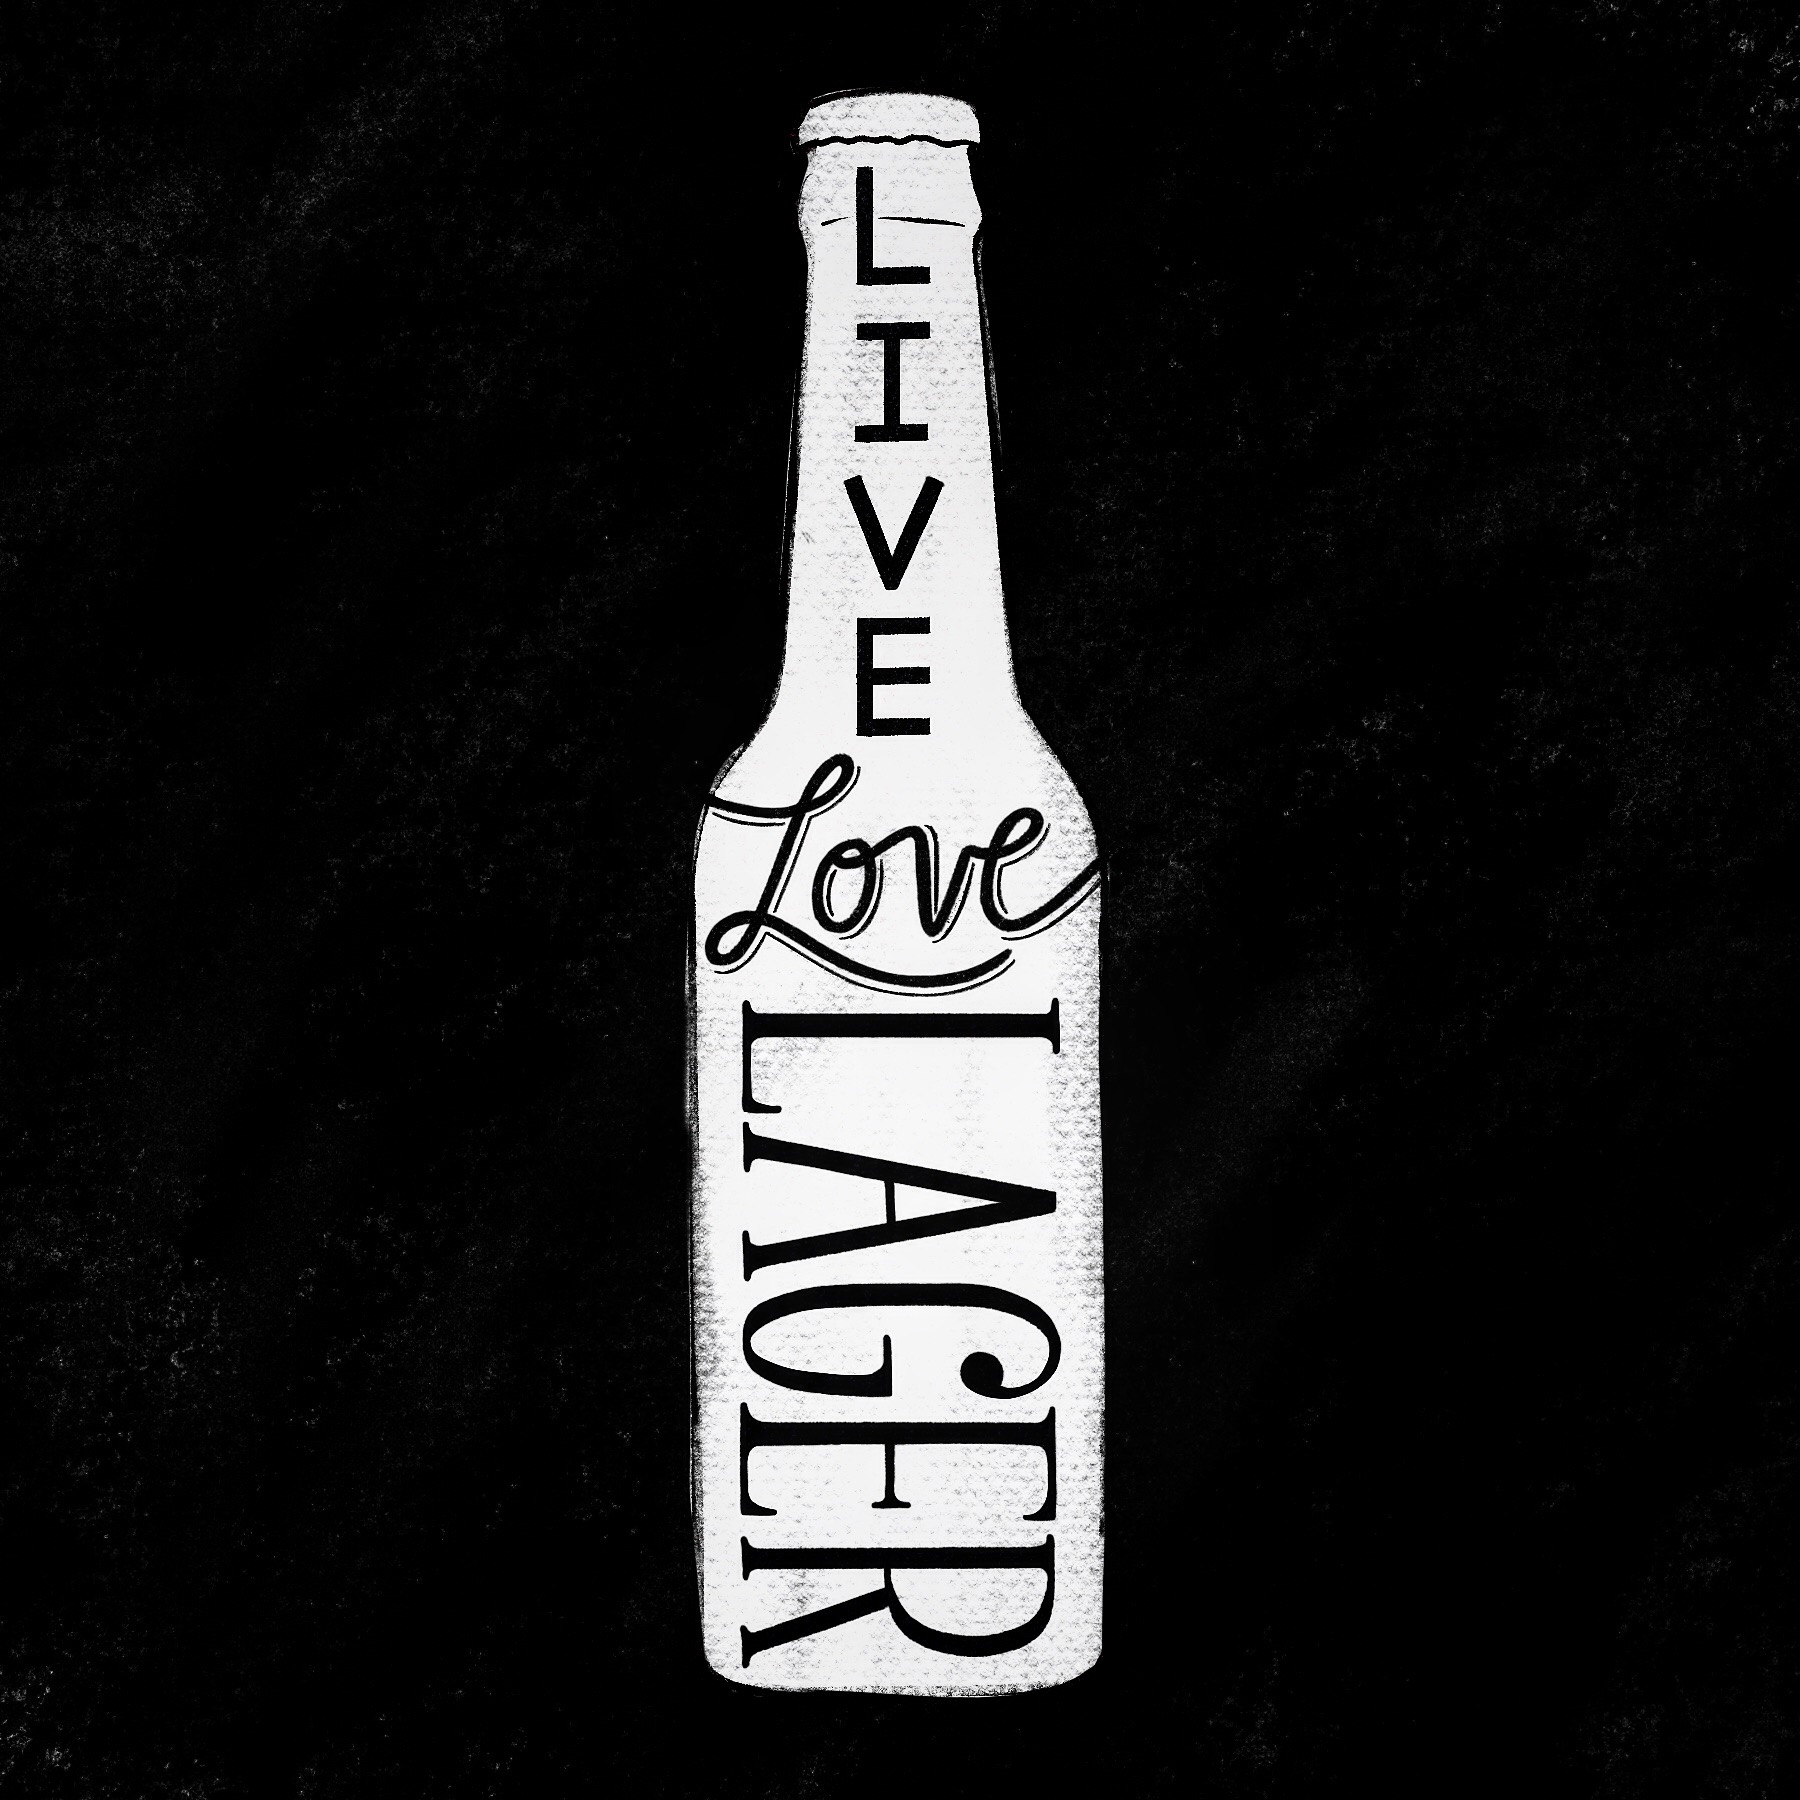 Live Love Lager